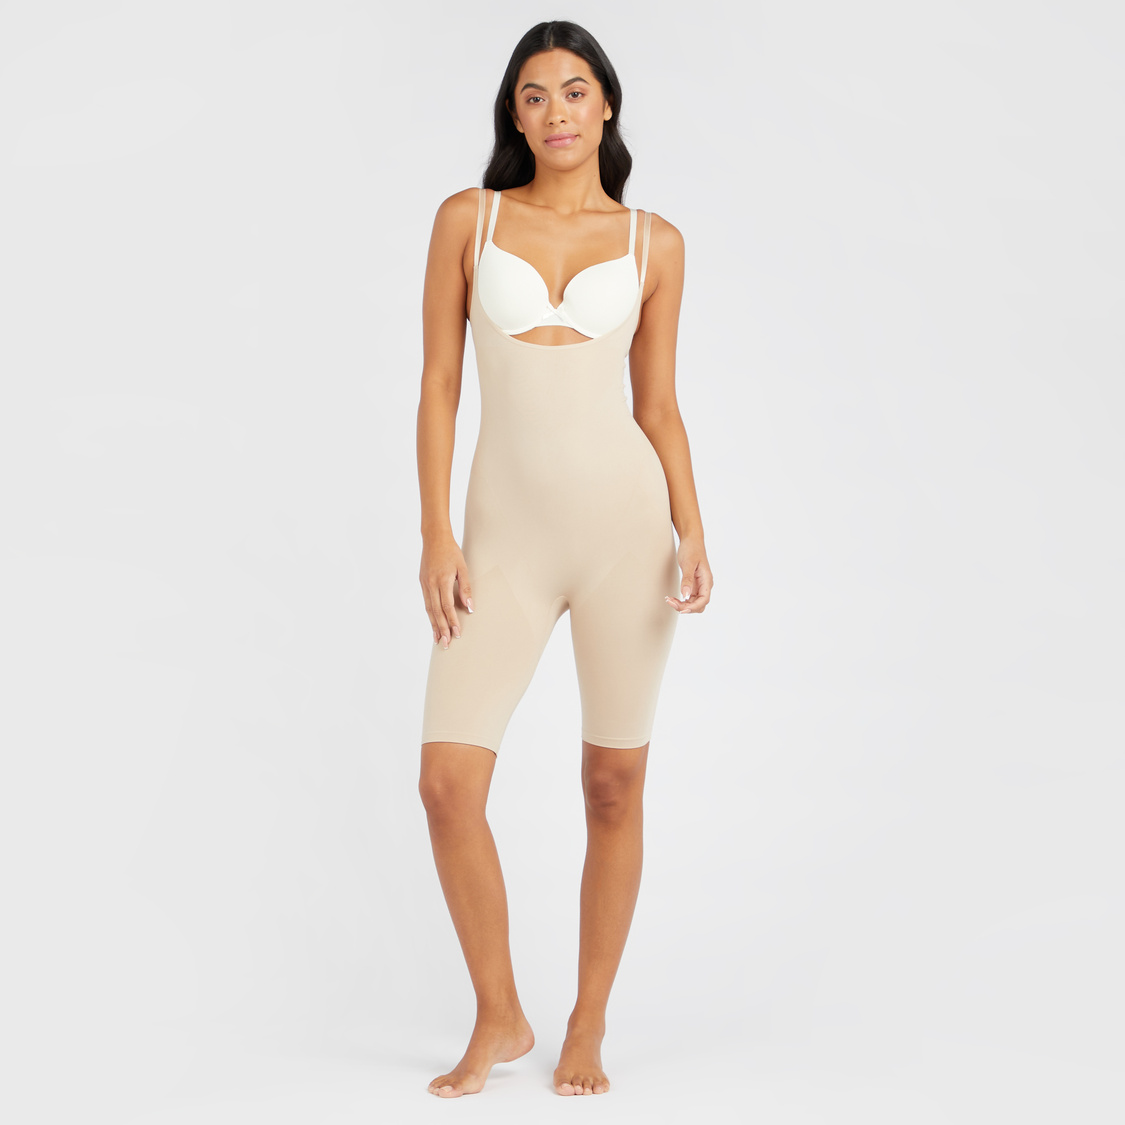 Textured Sleeveless Shaping Bodysuit with Scoop Neck